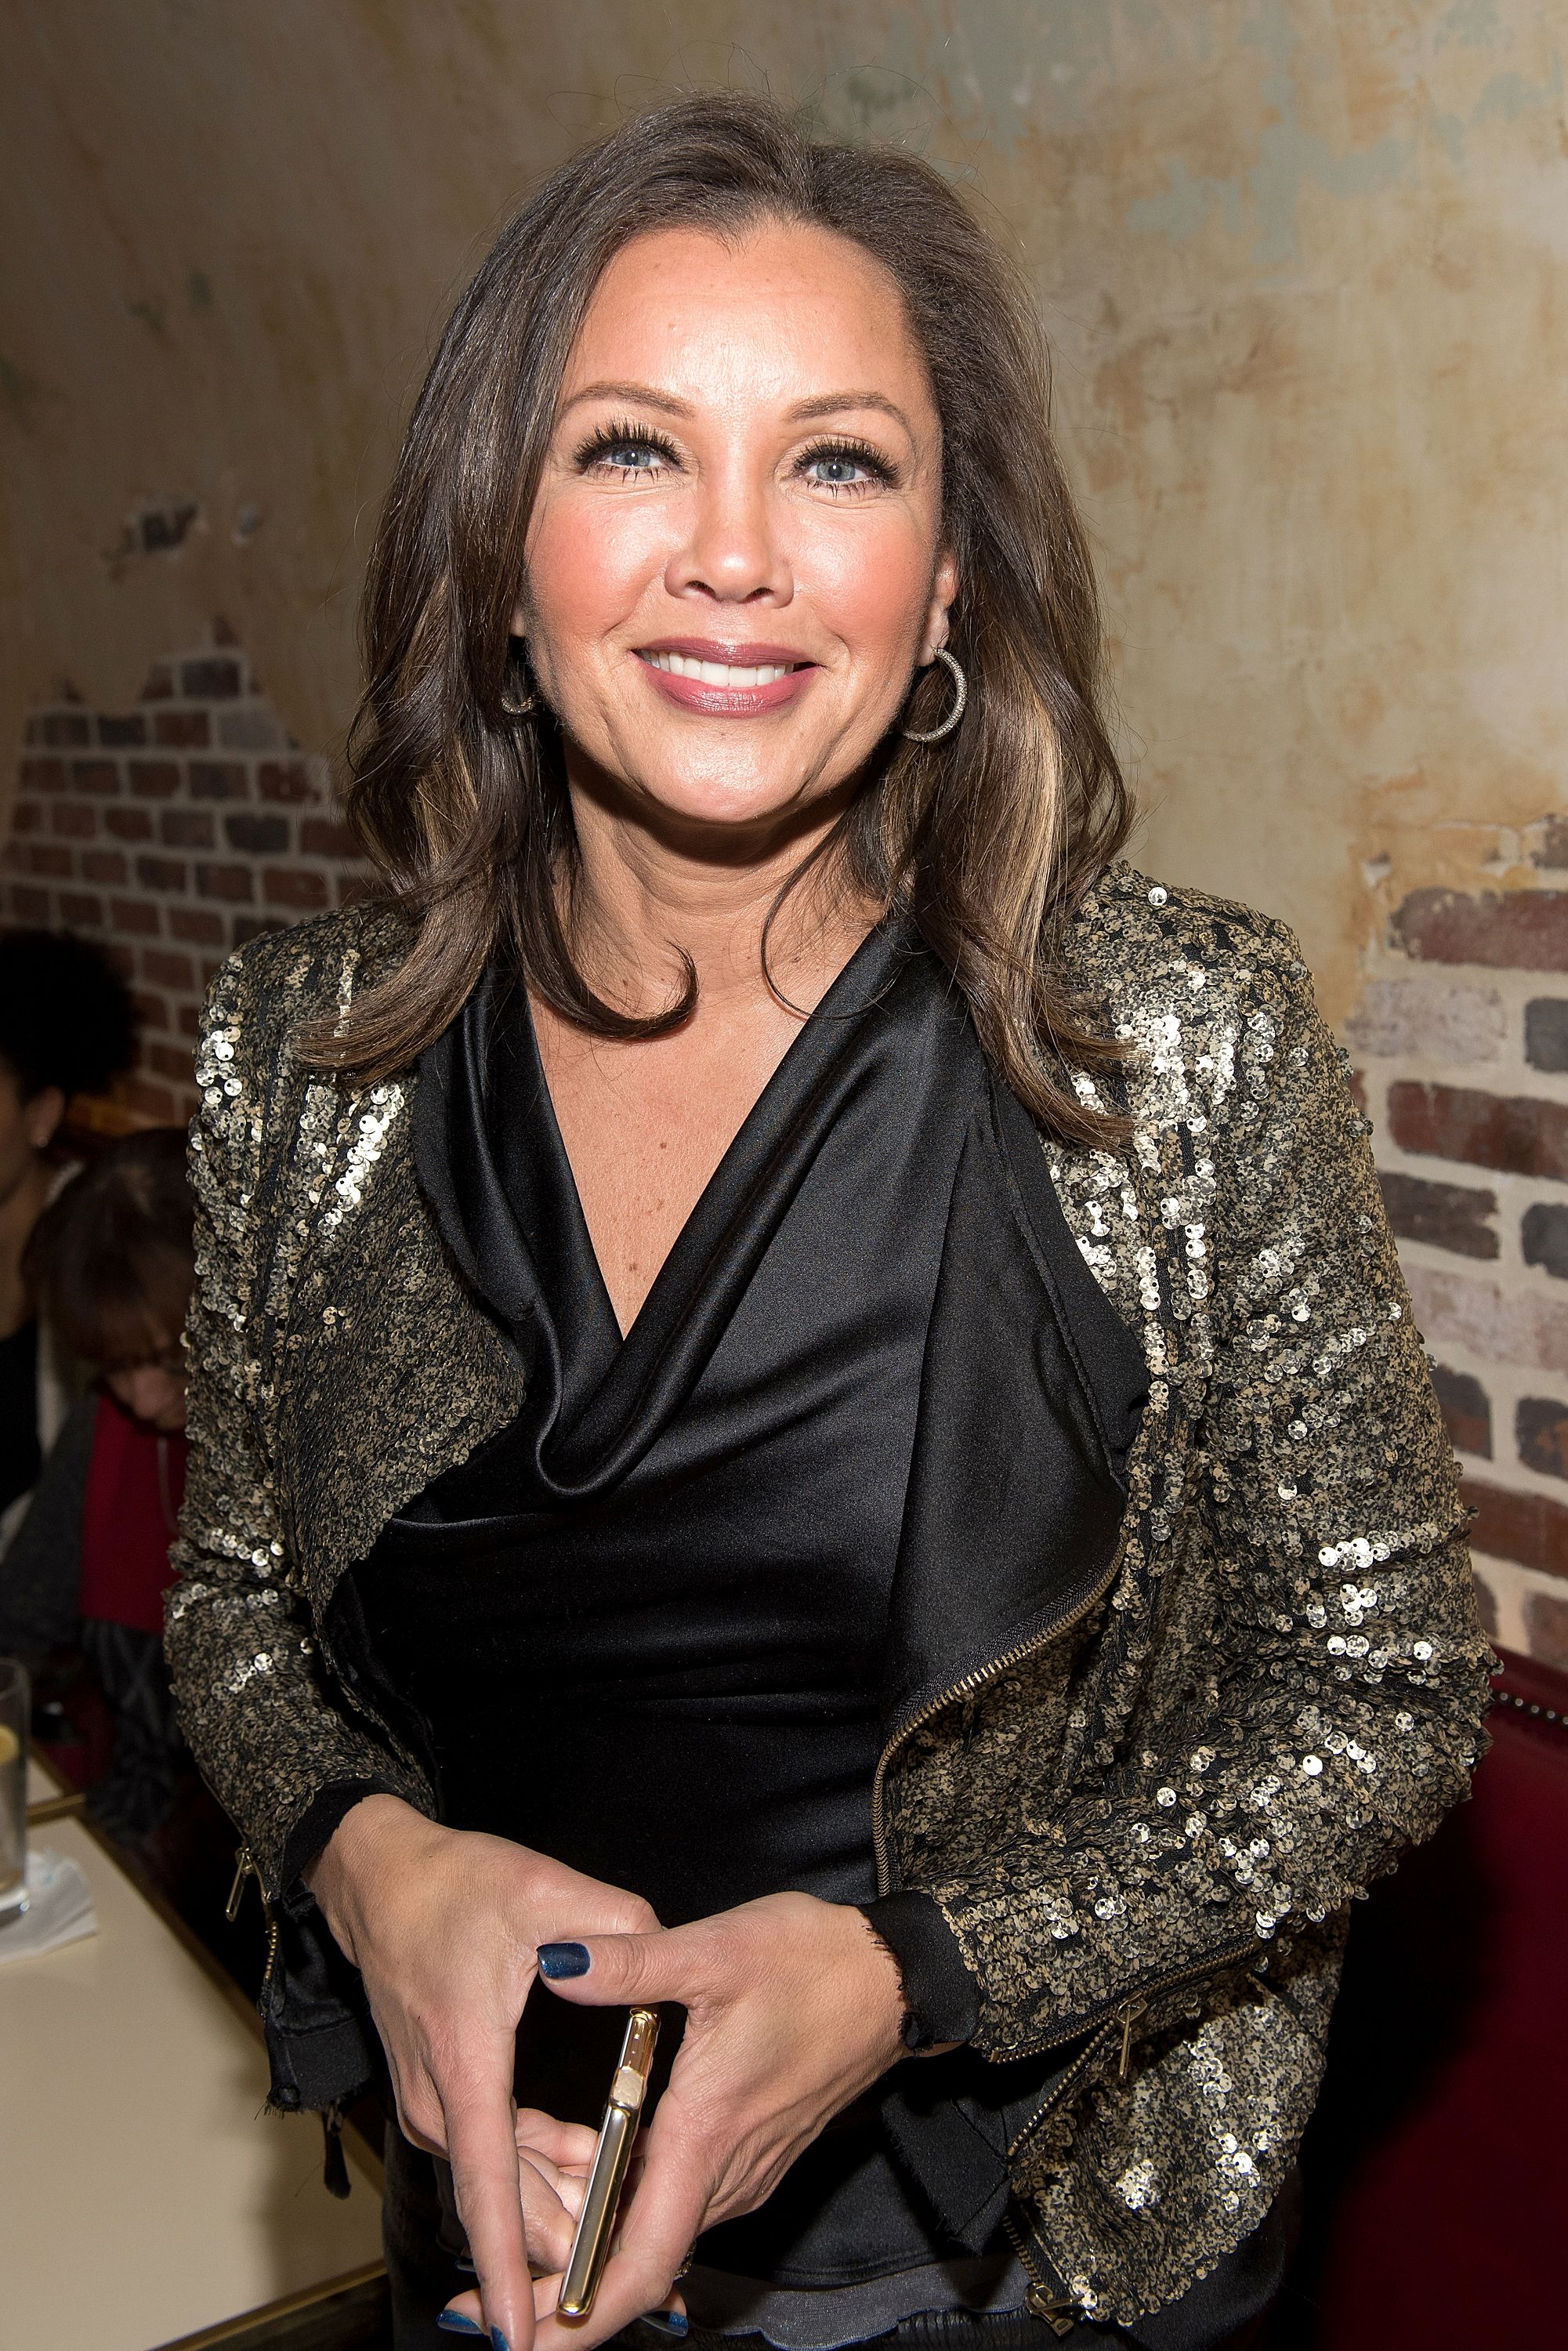 Even Vanessa Williams had acne at one point: | fxhbbxfgb ... Vanessa Williams